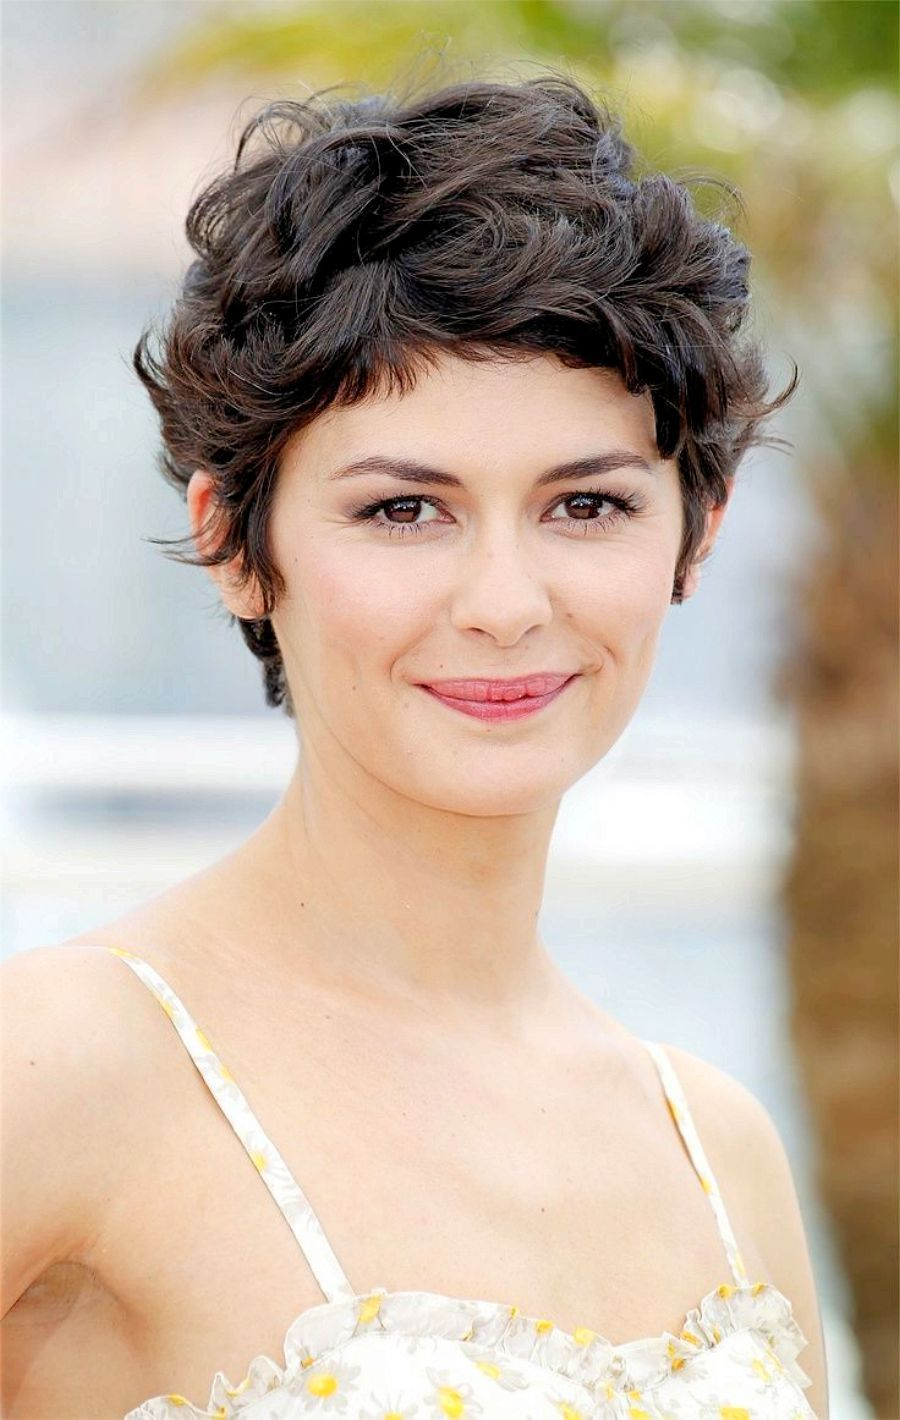 Charming Curly Pixie Hairstyles for Women Cute hair Pinterest